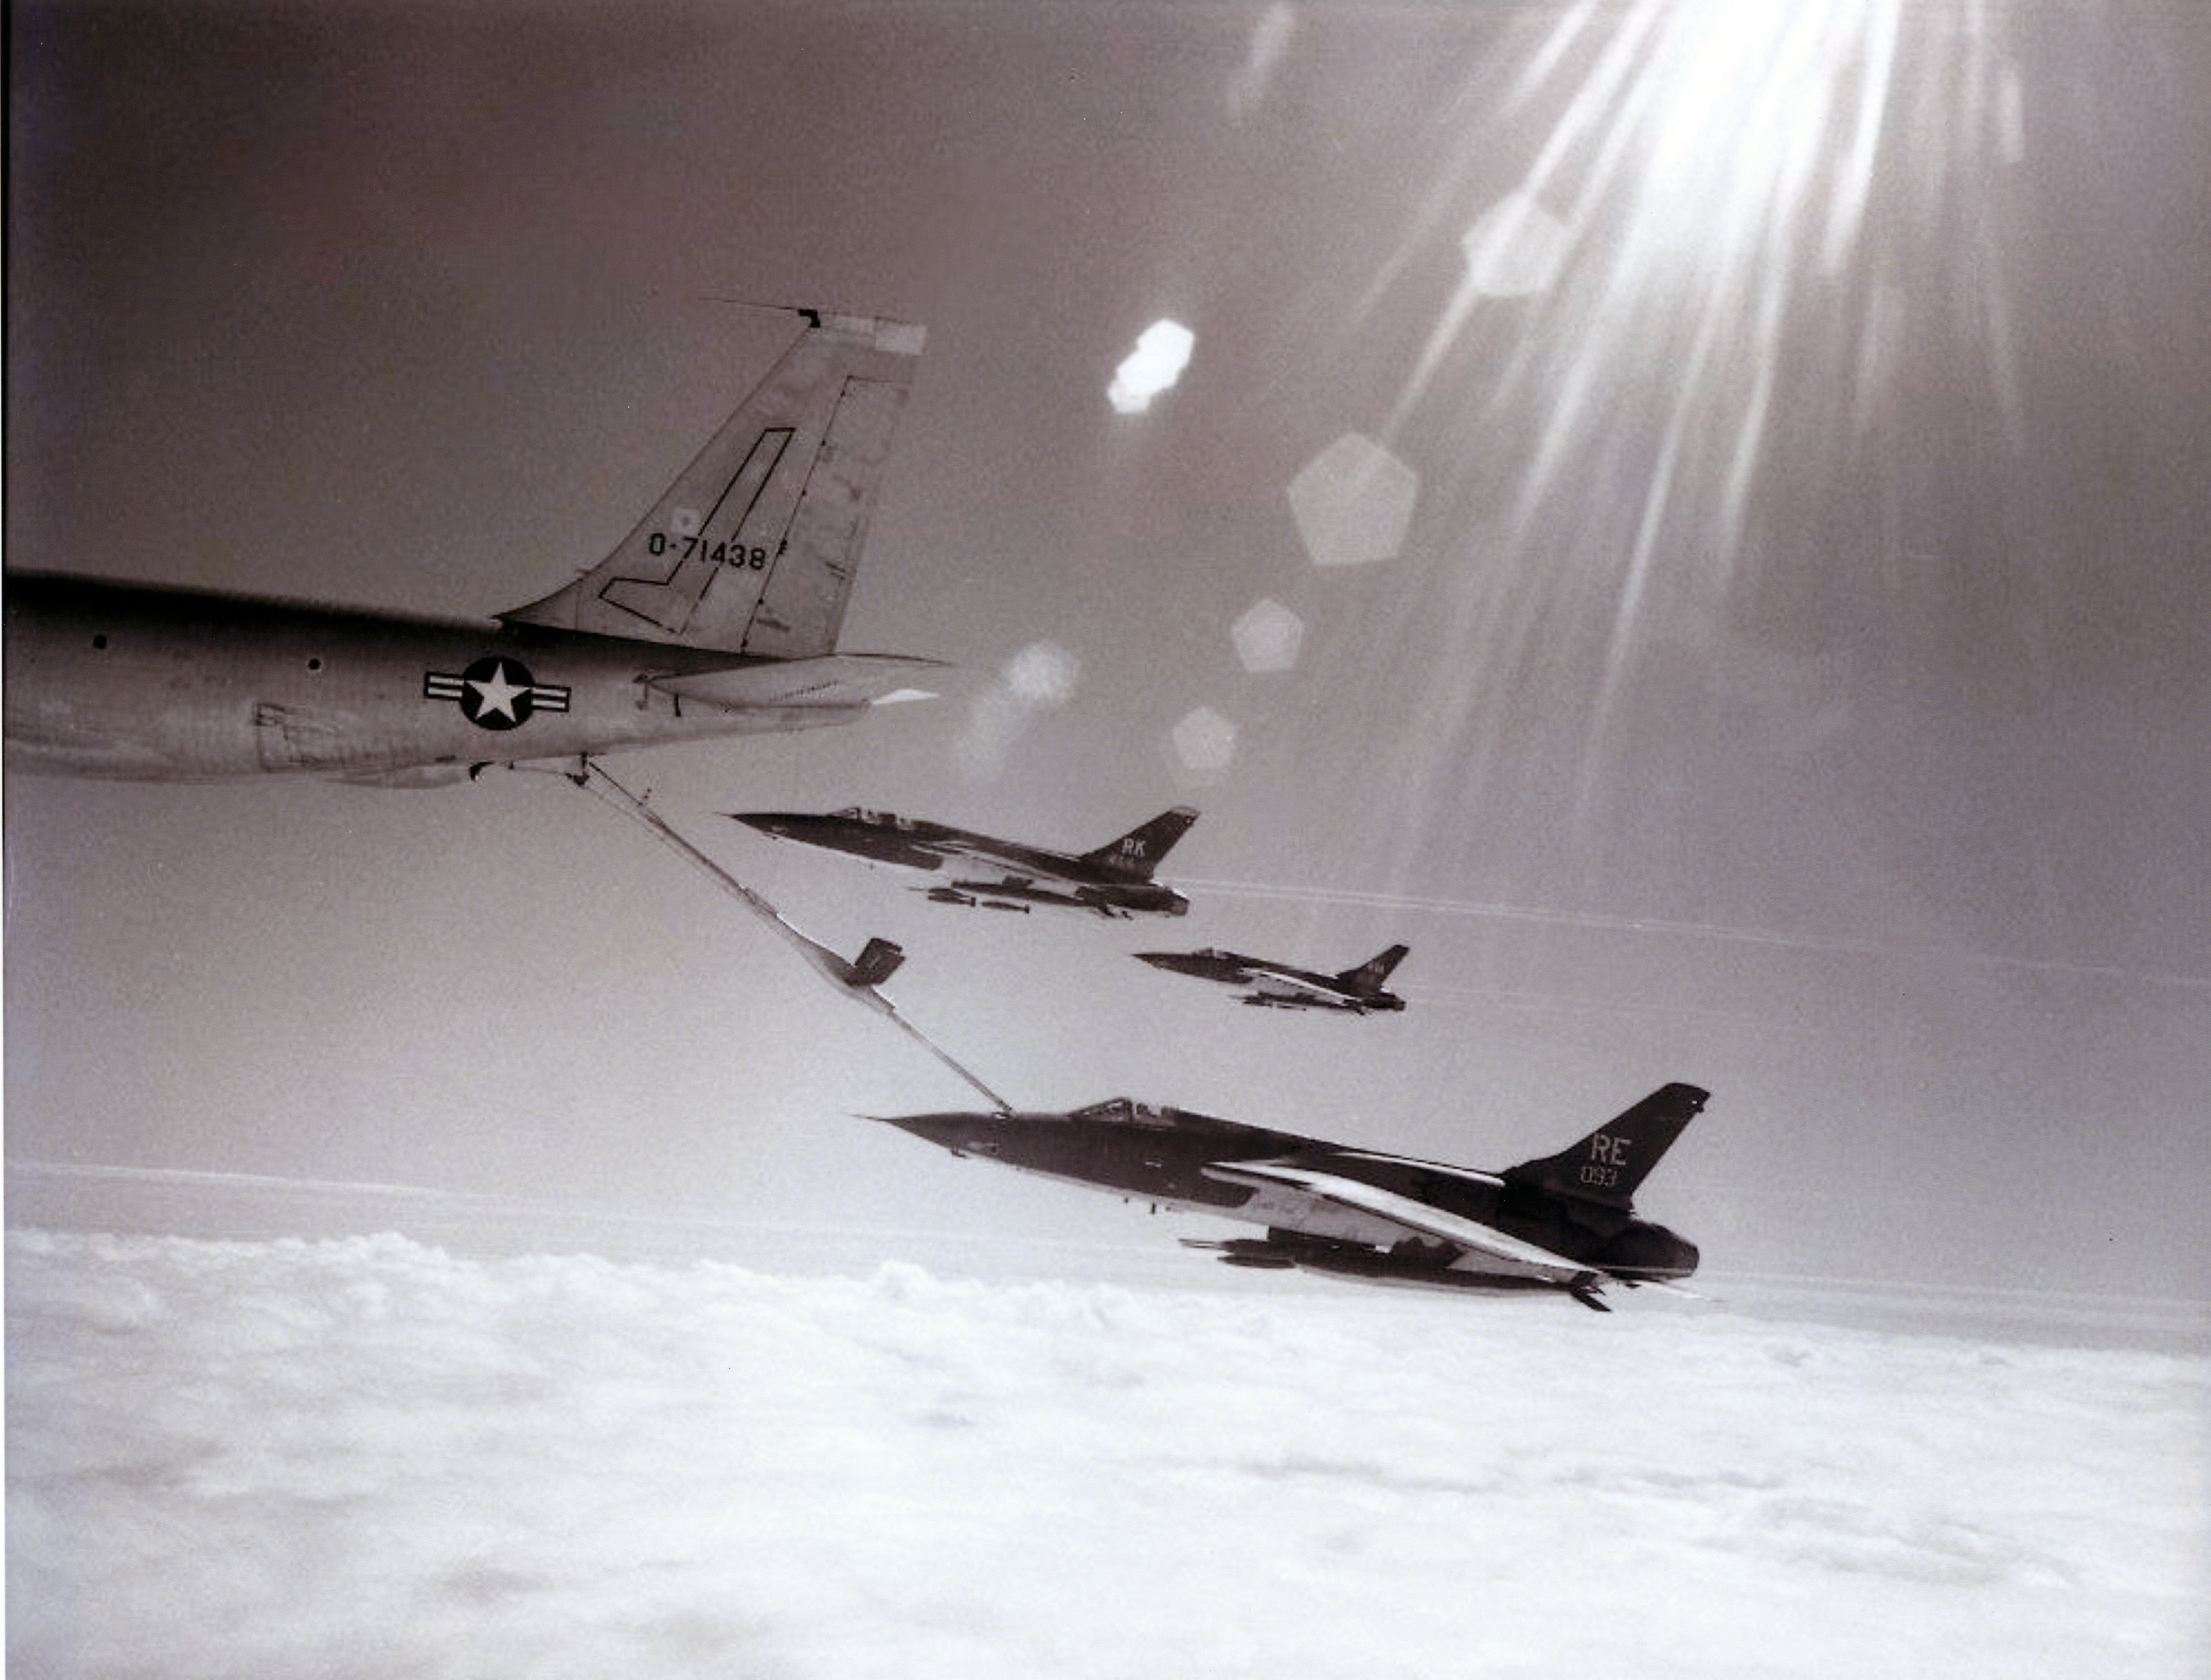 F-105 Thuds from the 355th Tactical Fighter Wing